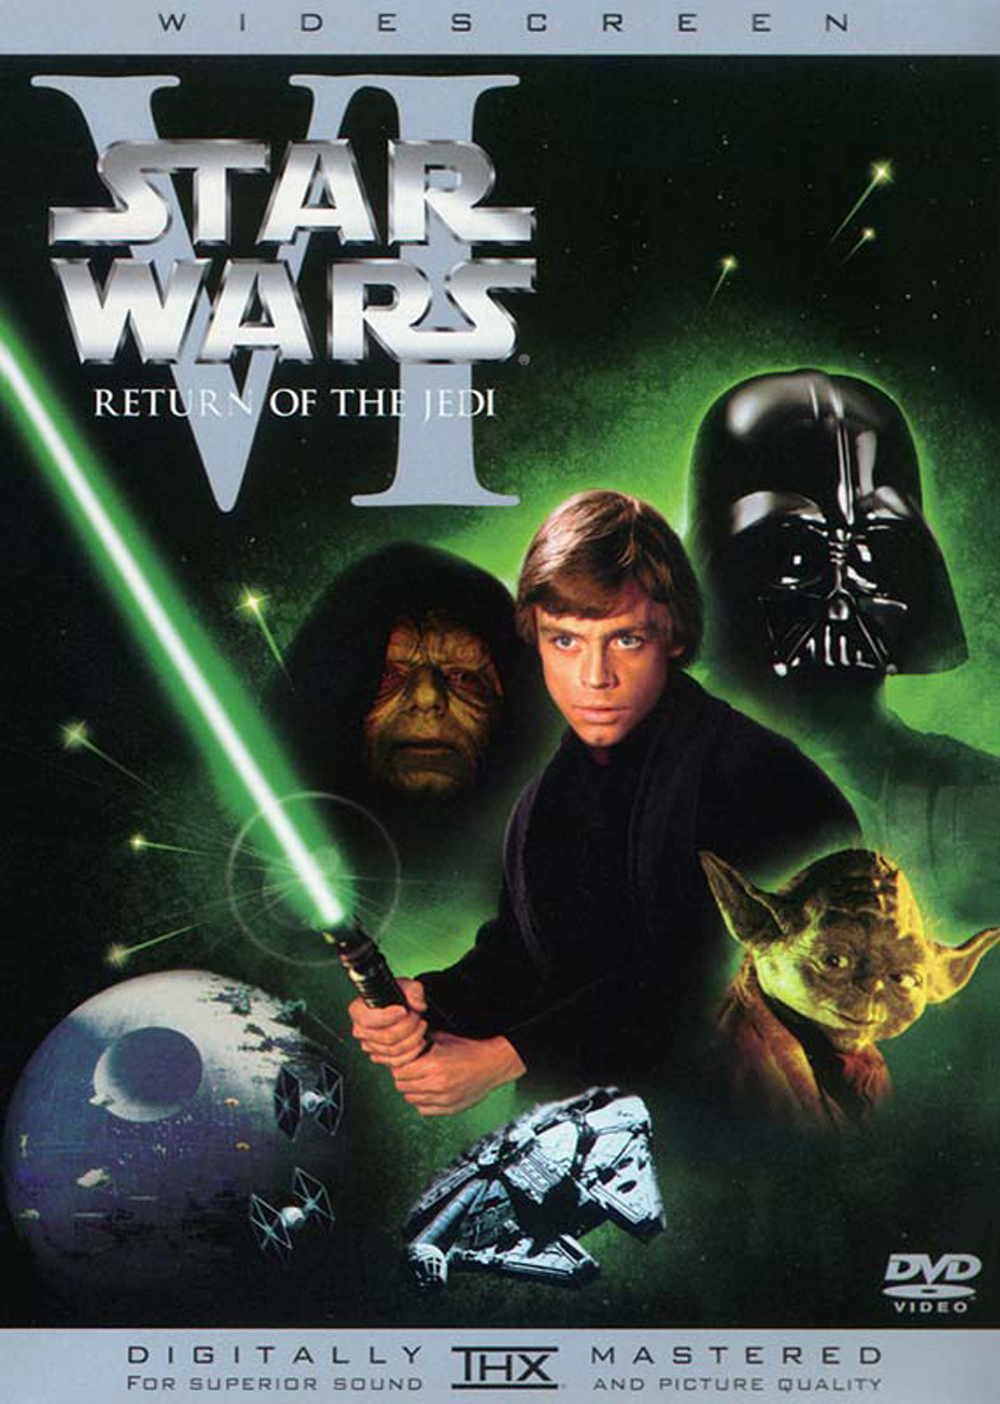 star-wars-episode-6-return-of-the-jedi-poster-4